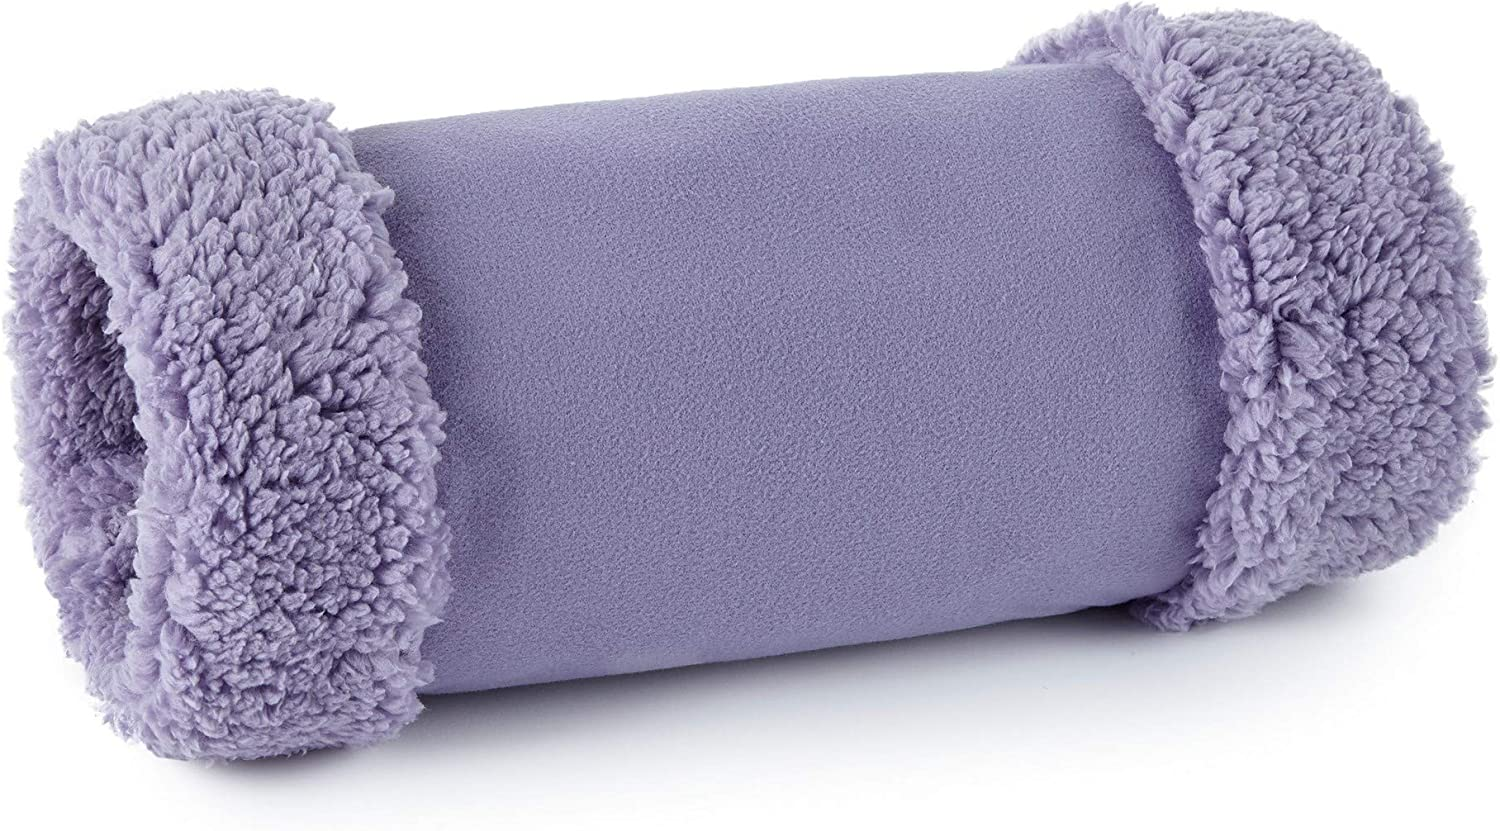 Thermee Micro Flannel Heated Hand Warmer, One Size, Lilac